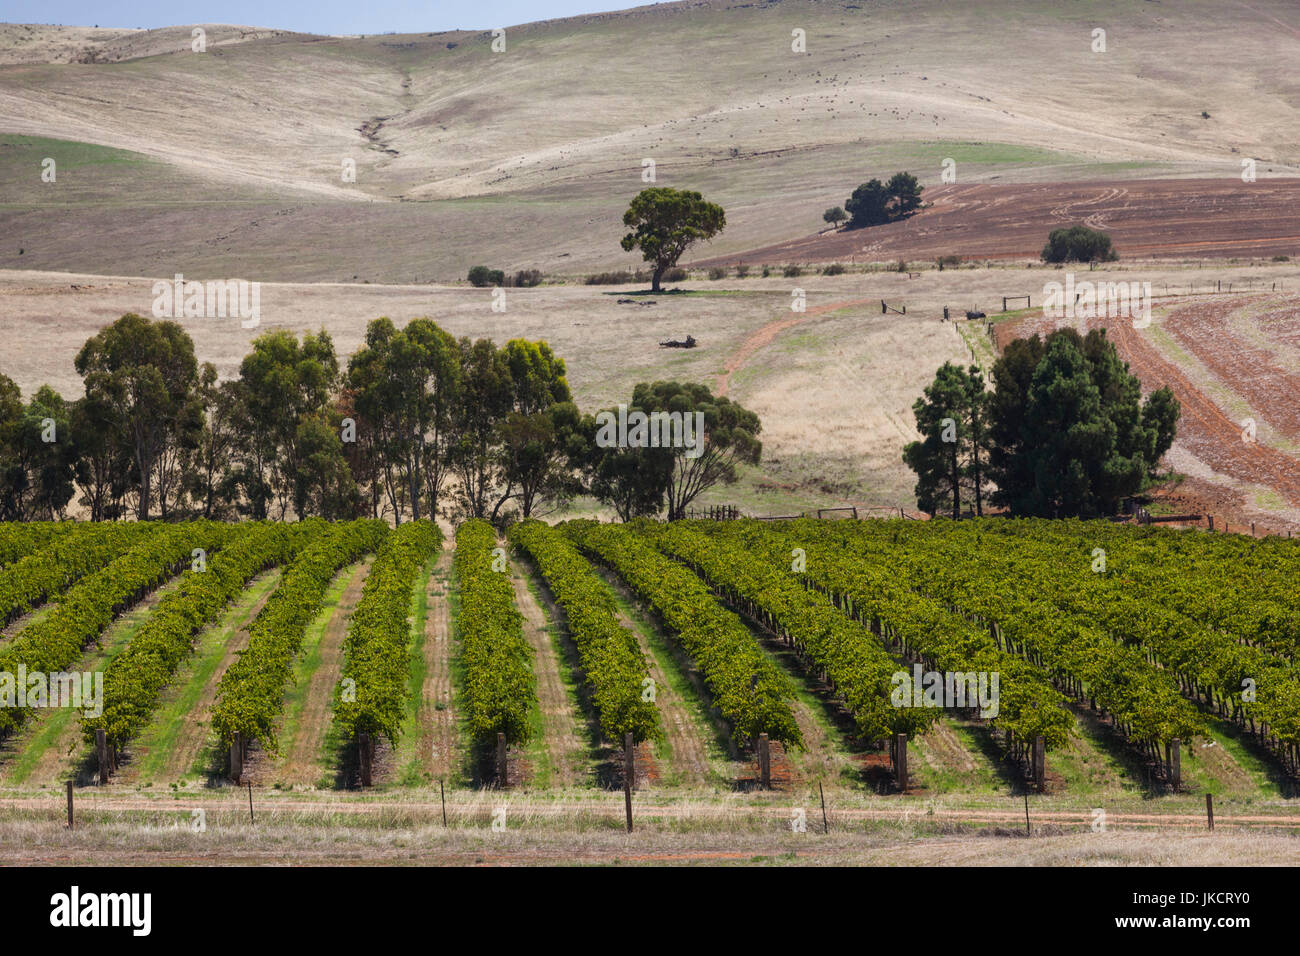 Australia, South Australia, Clare Valley, Auburn, vineyard - Stock Image